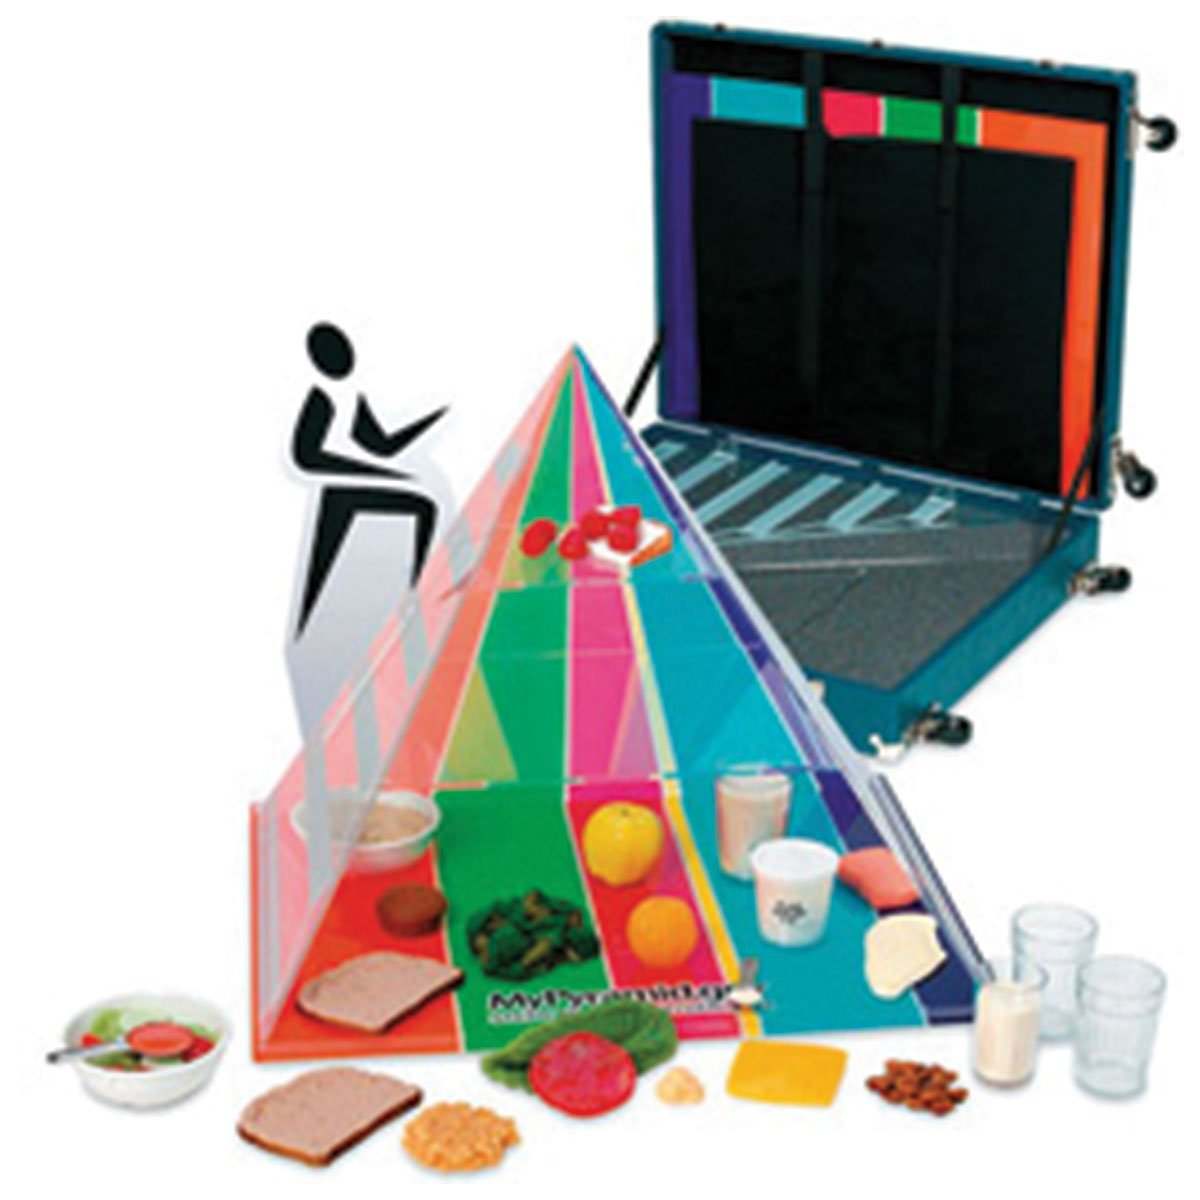 Nasco Fort Atkinson WA24202 3-D Pyramid Food Guide Kit with Case, 3 Boxes